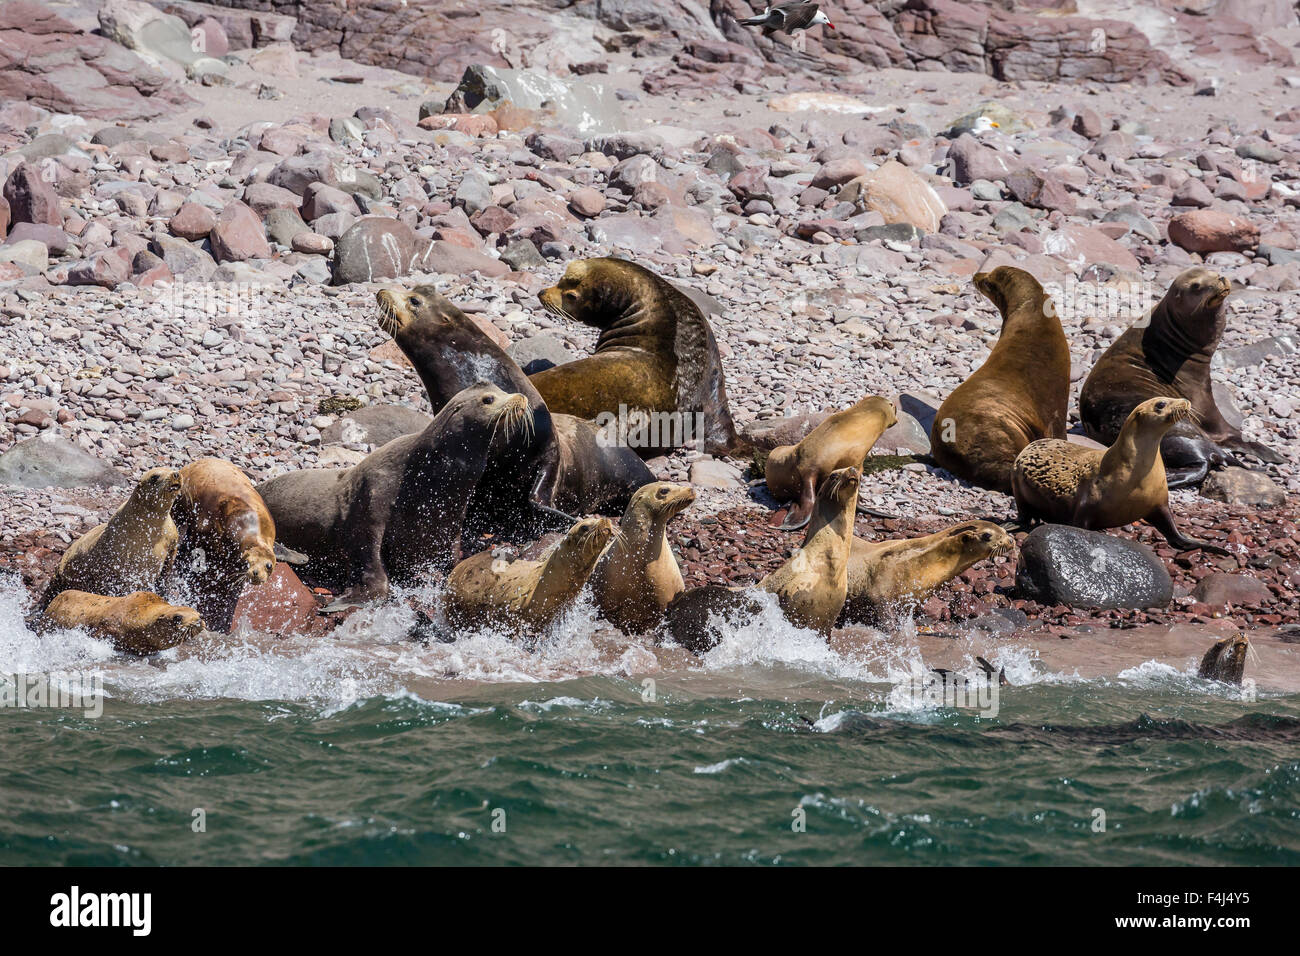 California sea lion (Zalophus californianus) herd stampeding to the sea at Isla San Esteban, Baja California, Mexico Stock Photo